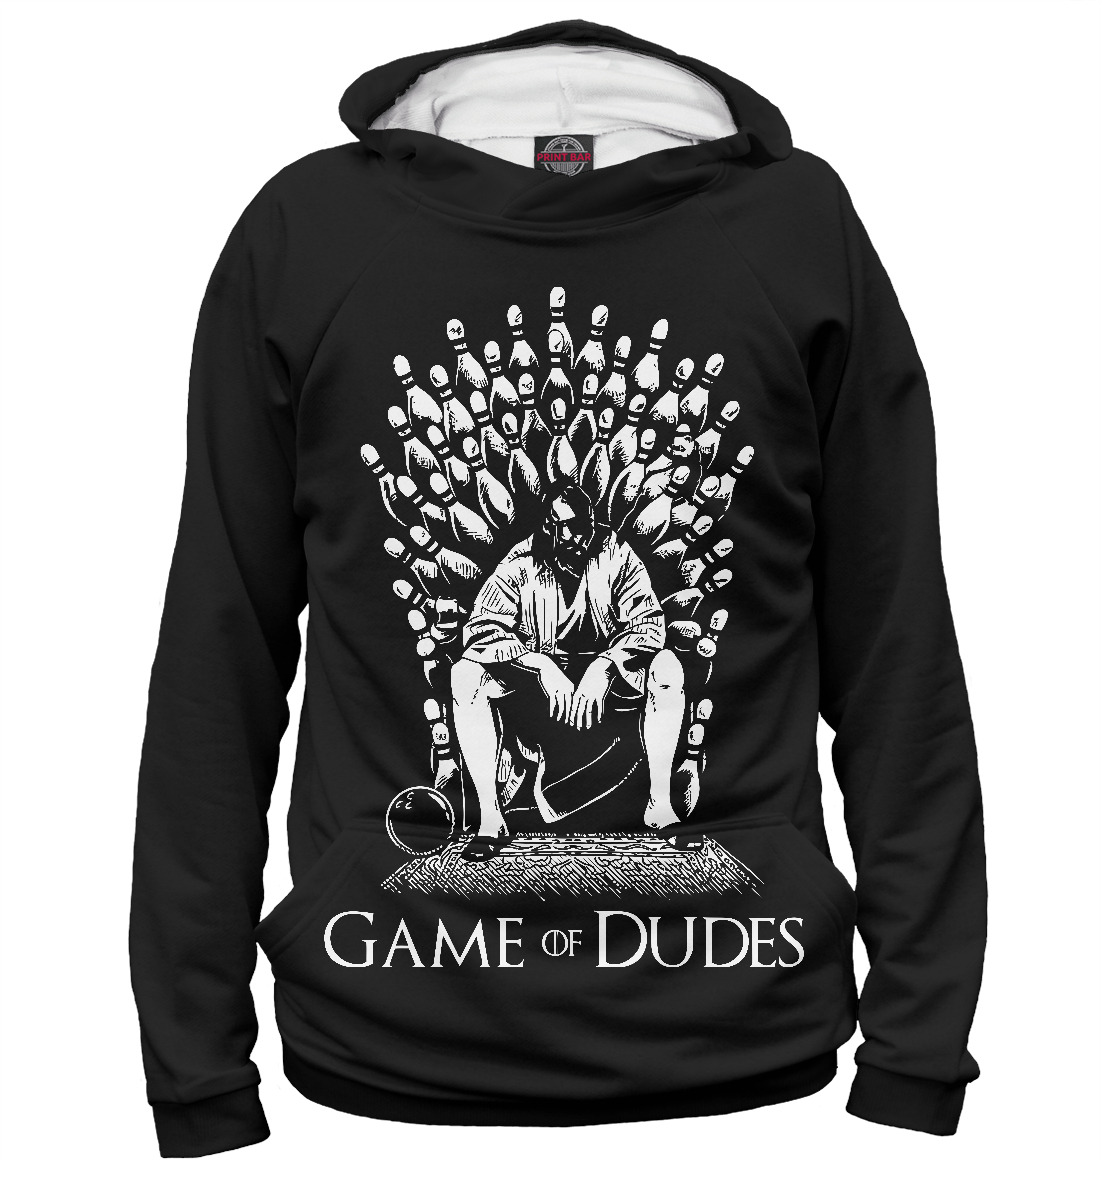 Game of Dudes